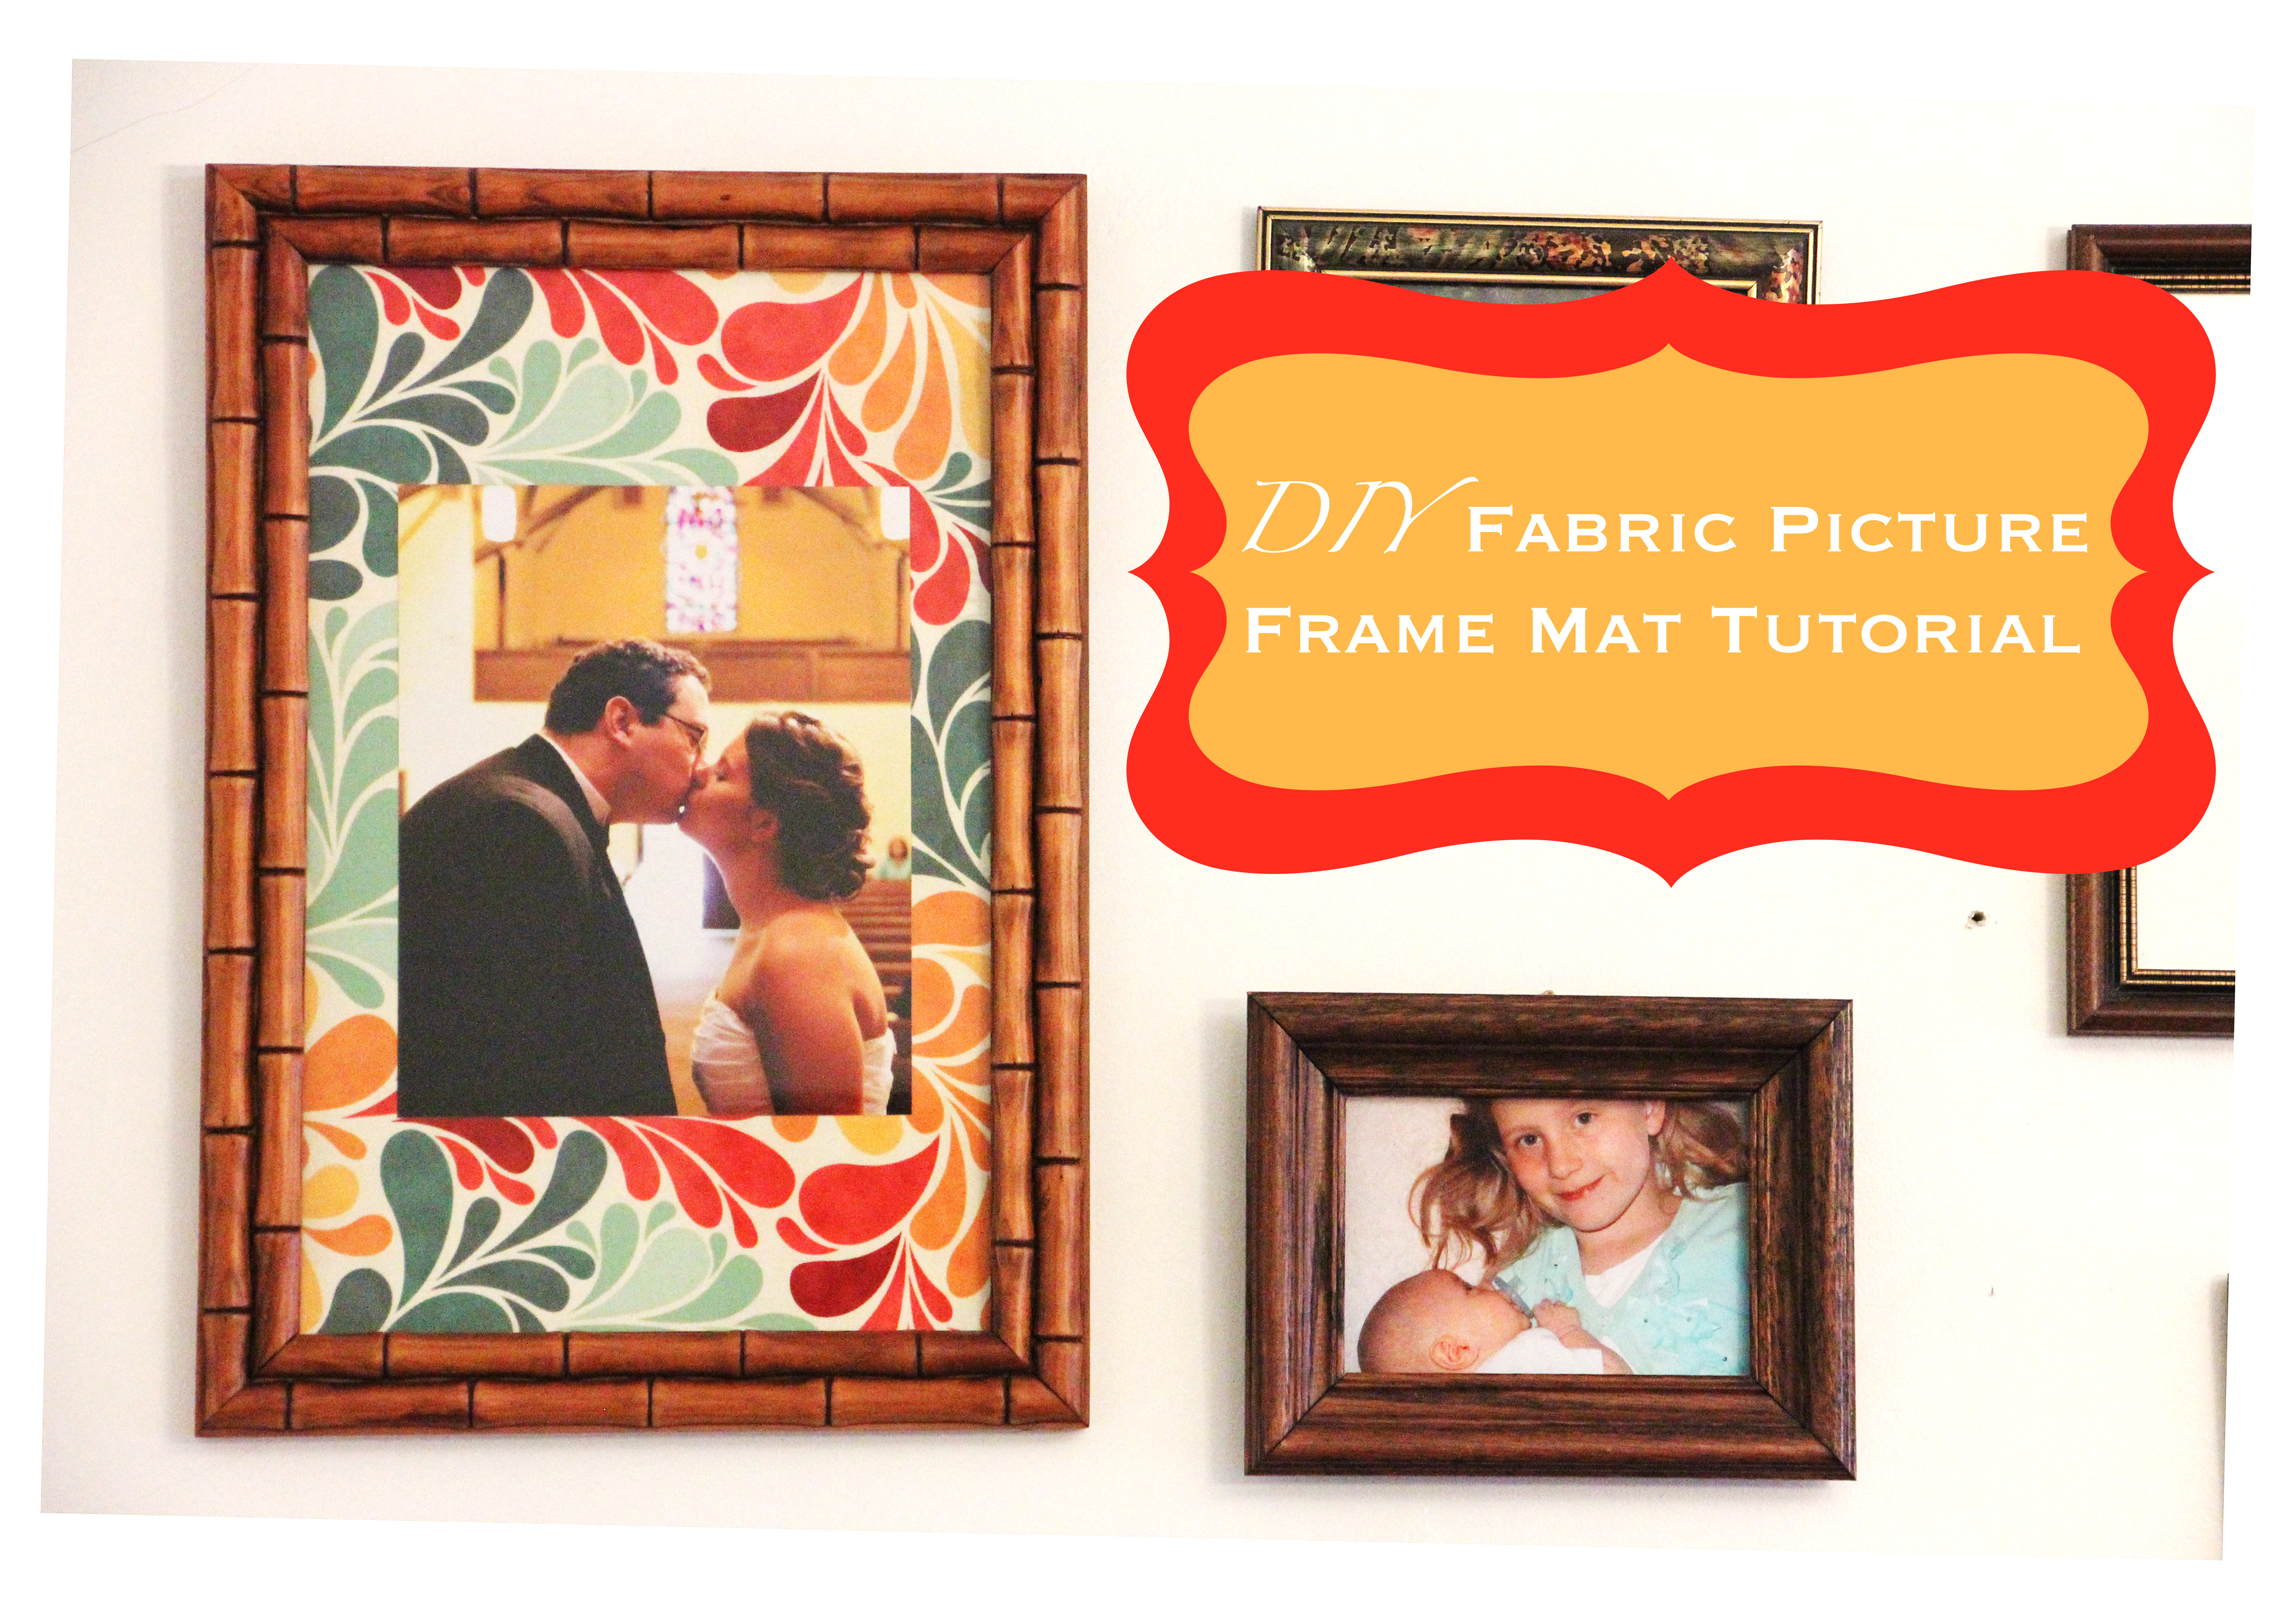 DIY Fabric Picture Frame Mat Tutorial